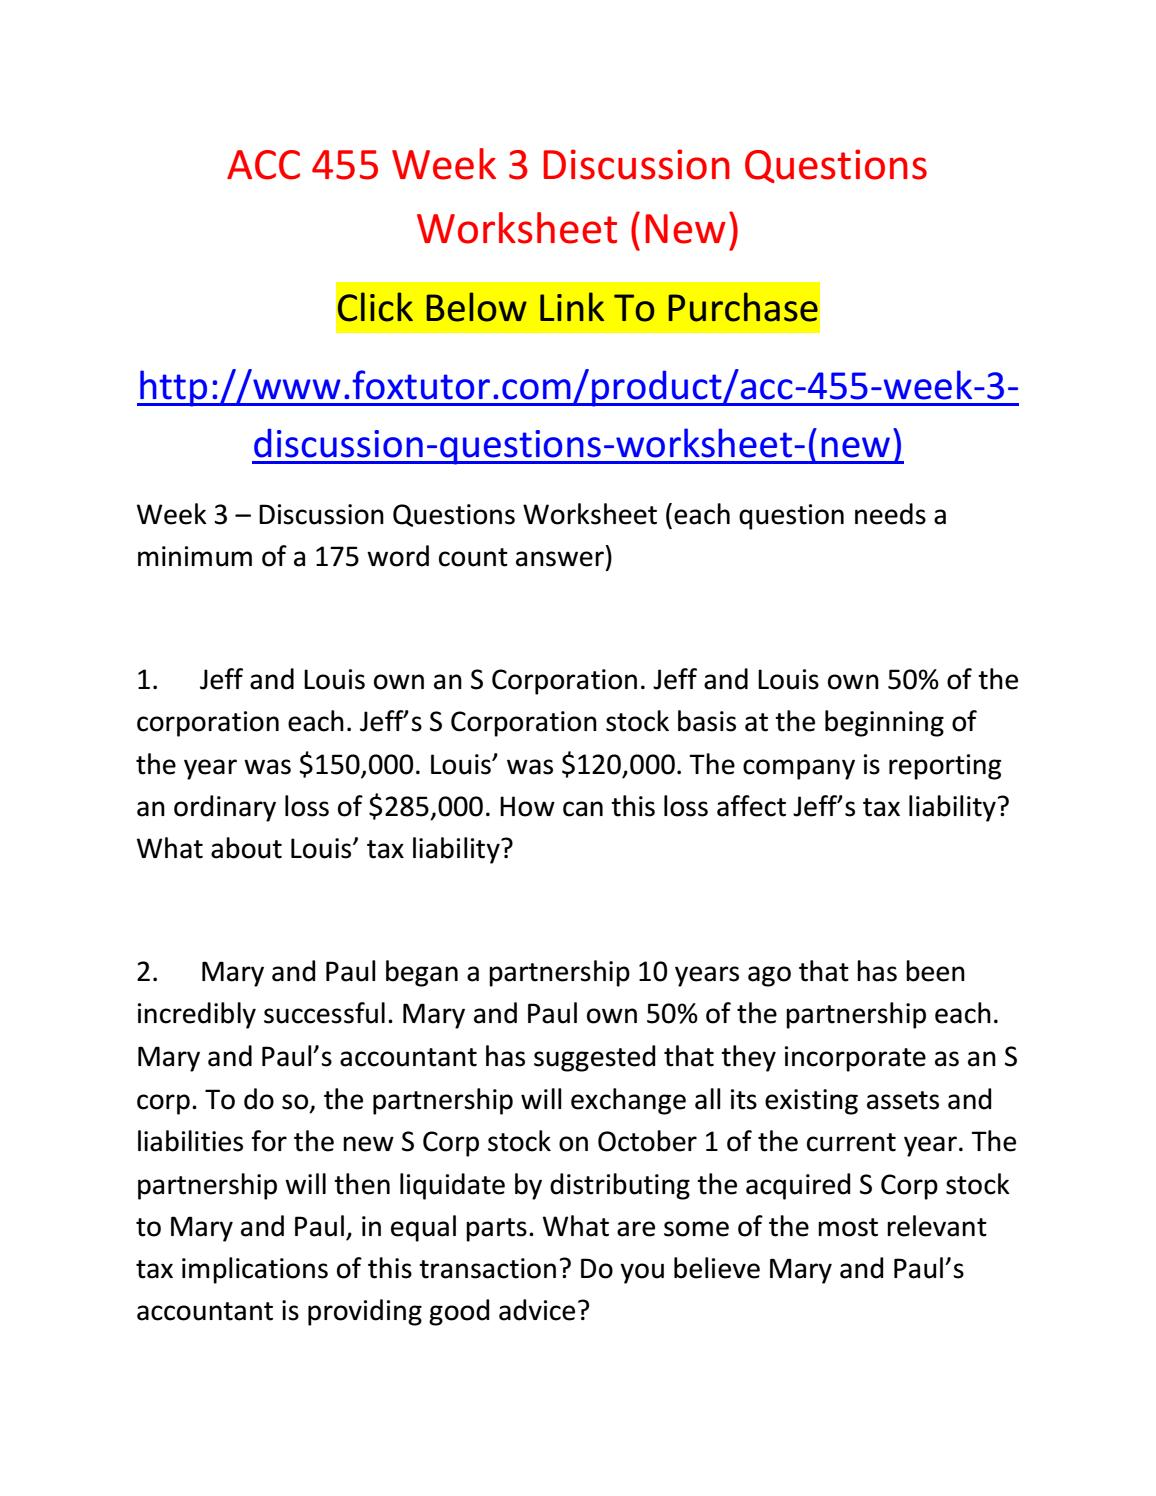 Worksheets Partnership Basis Worksheet worksheets partnership basis worksheet citysalvageanddesign free 108359346167 on solving two math easy the best and most comprehensive workflow maste